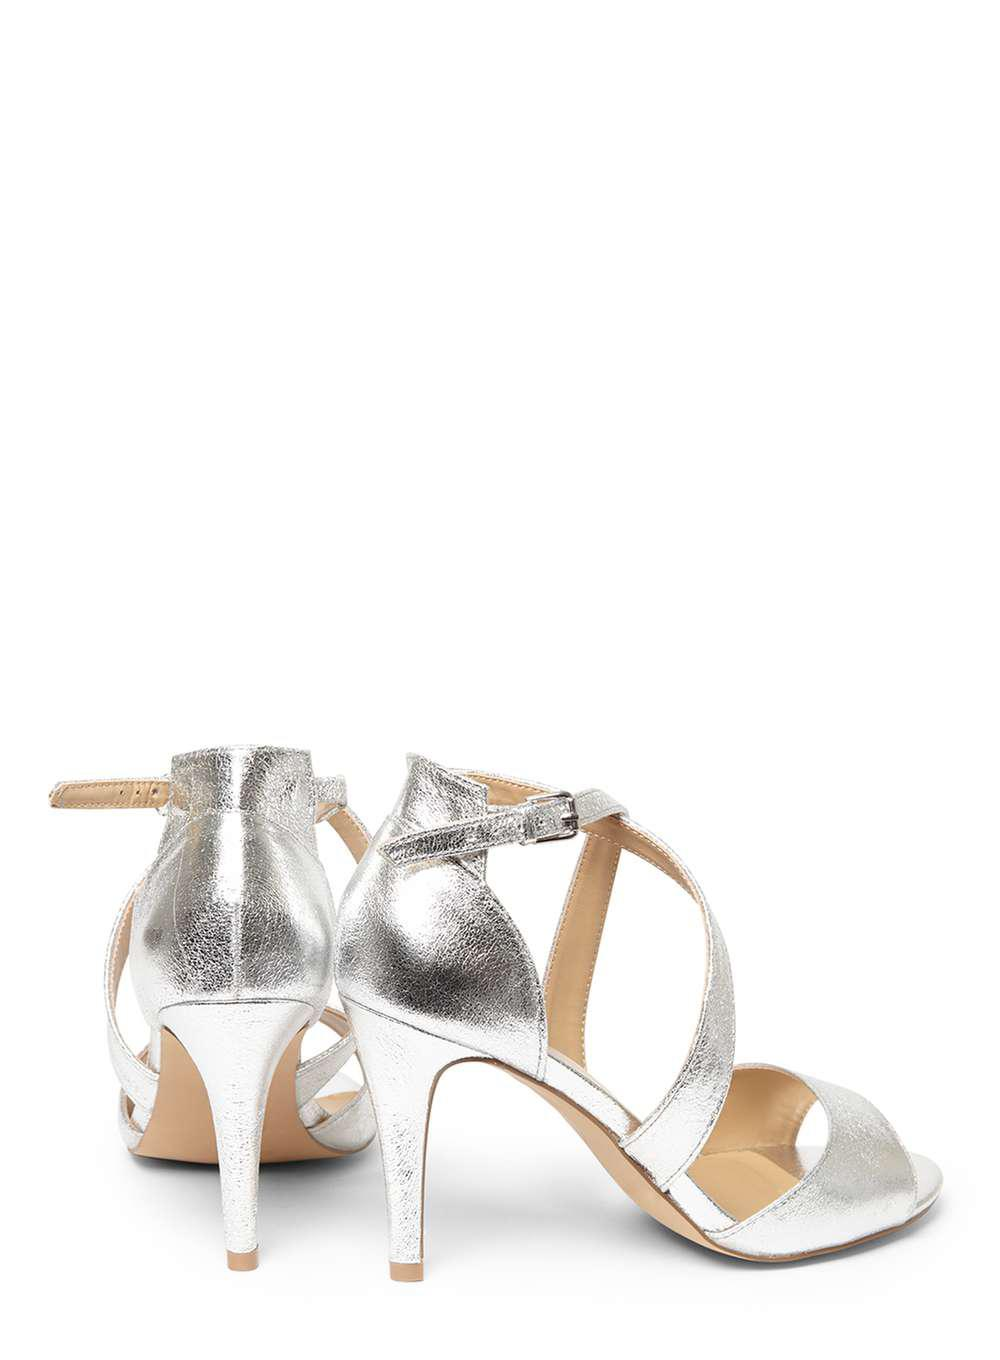 73685468ef712 Dorothy Perkins Wide Fit Silver 'sasha' Sandals in Metallic - Lyst